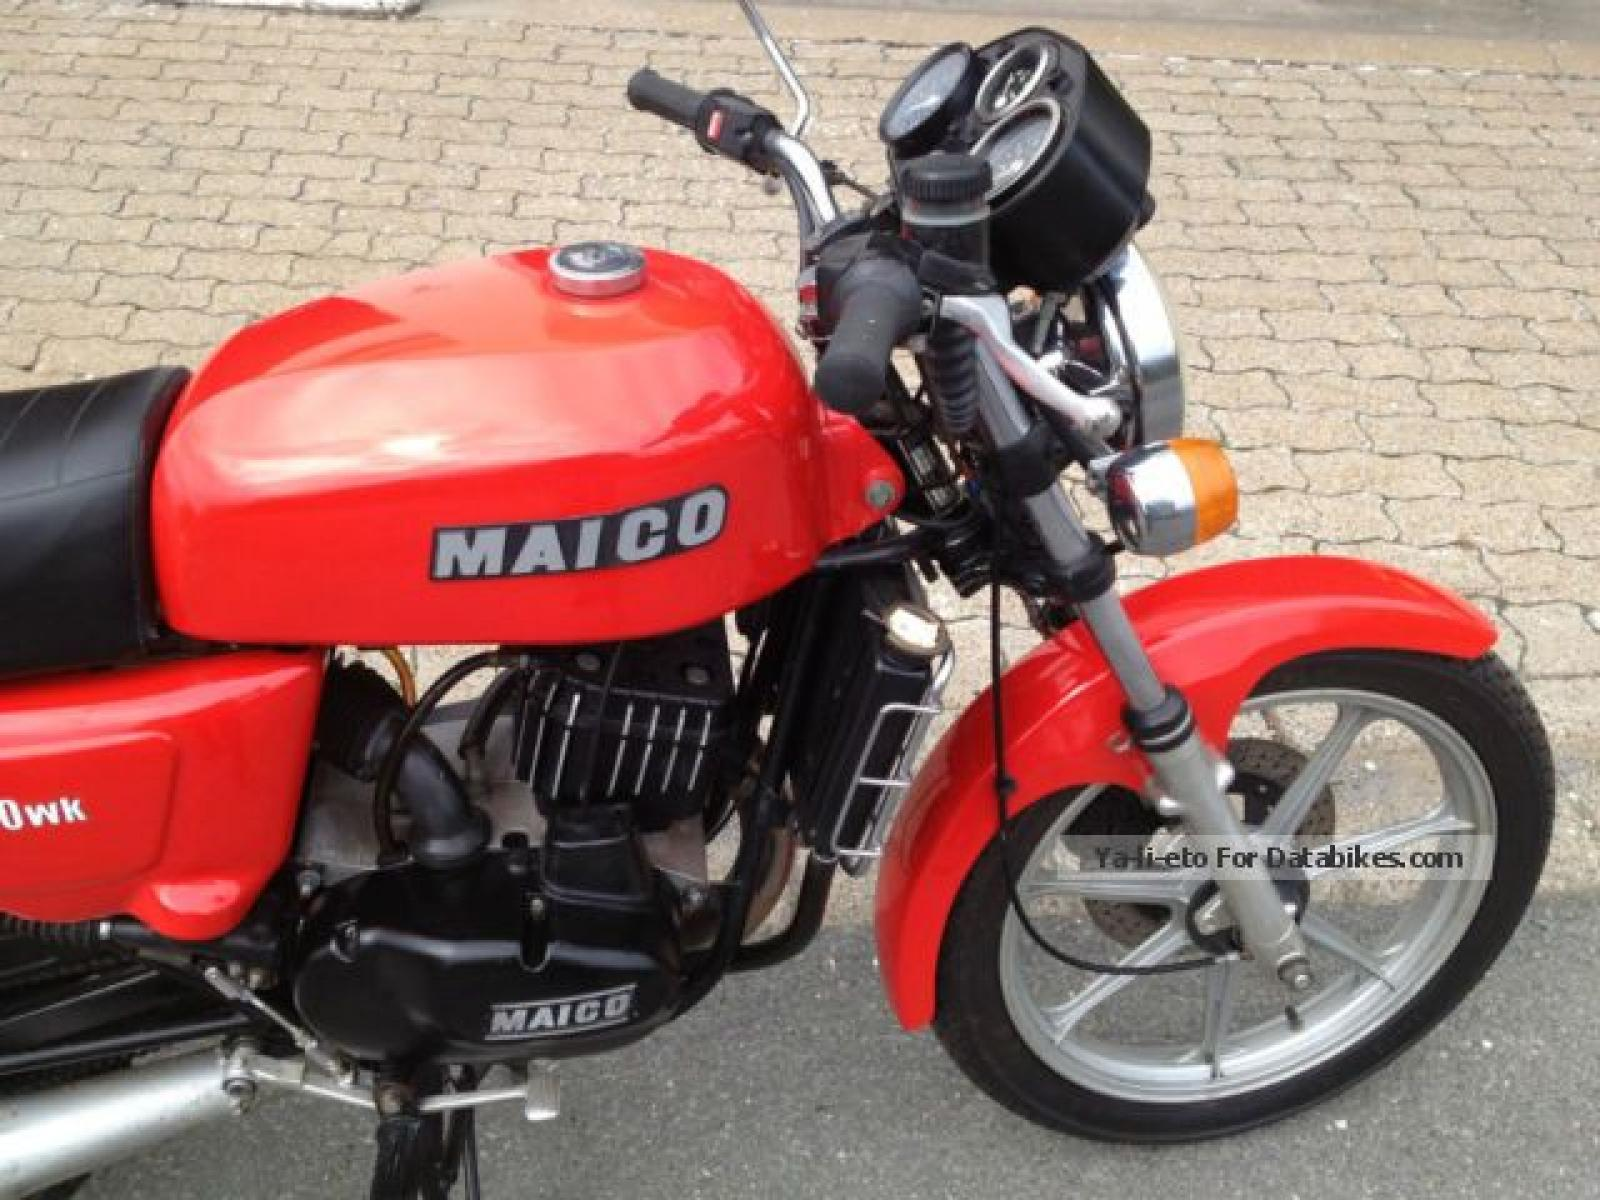 Maico MD 250 WK 1981 images #103498